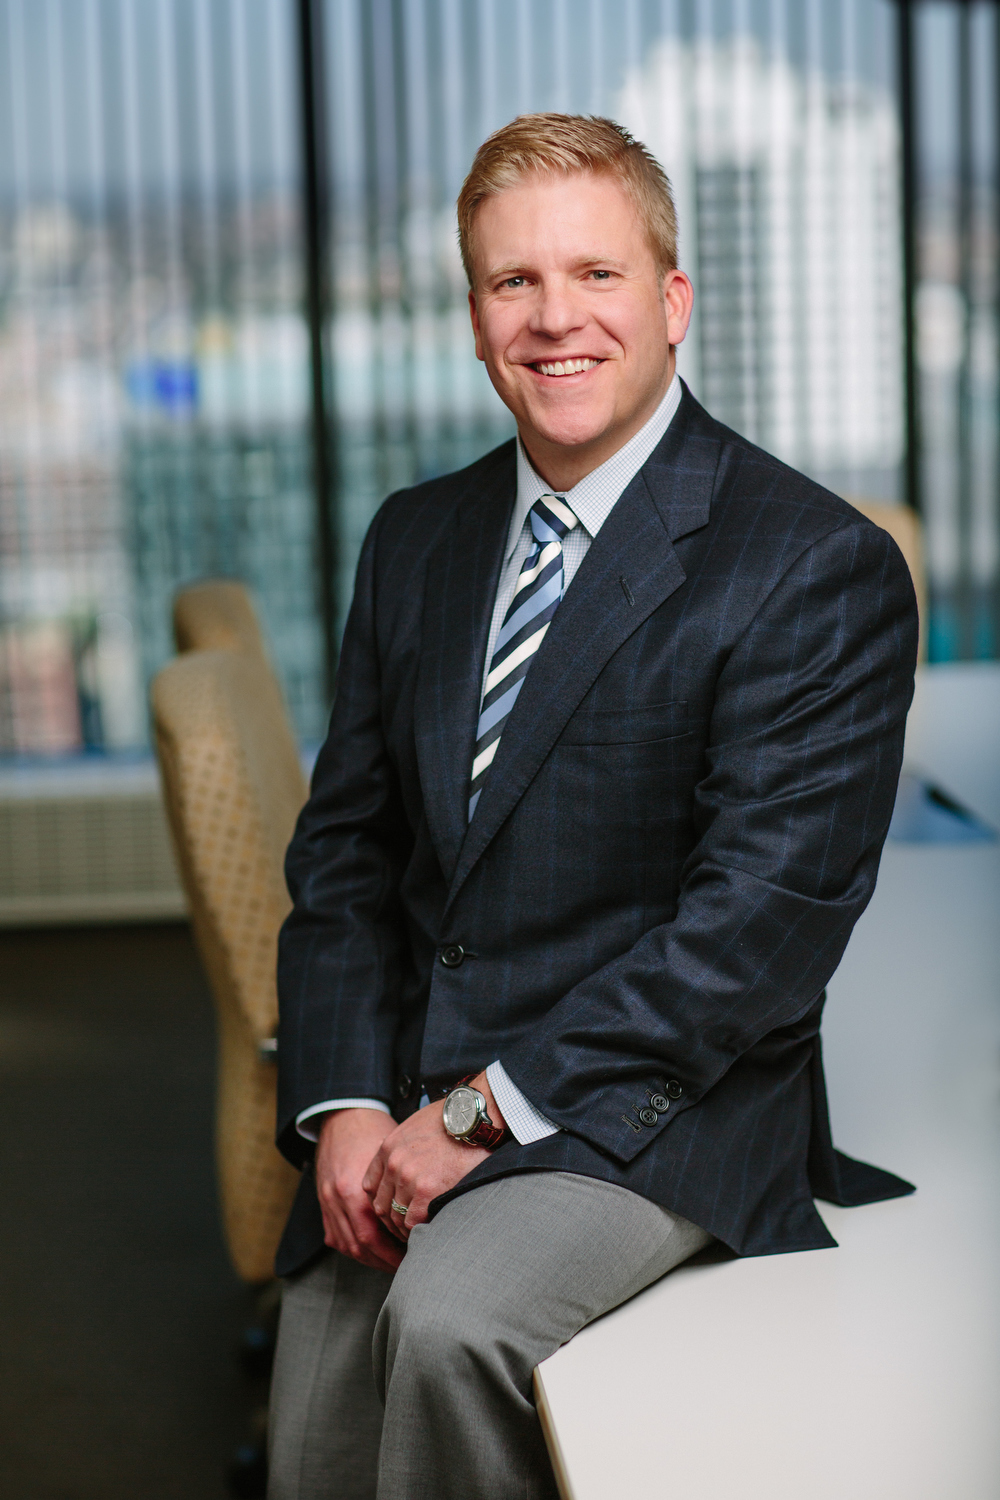 CORPORATE PORTRAITS ON LOCATION — Andrew Collings Photography